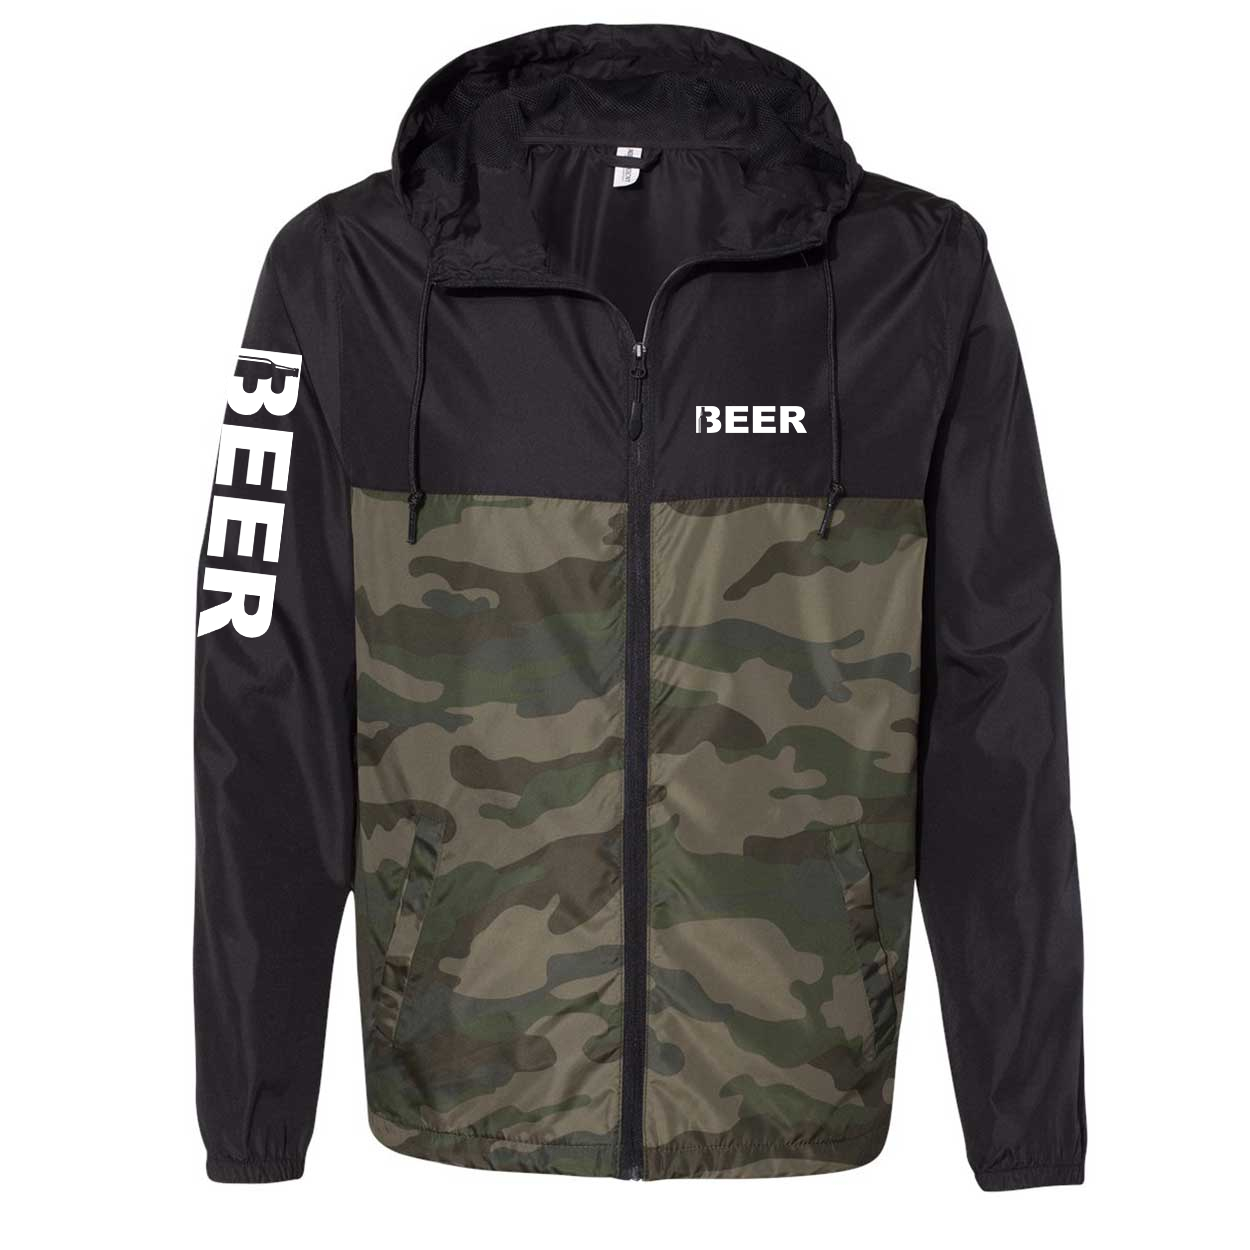 Beer Bottle Logo Classic Lightweight Windbreaker Black/Forest Camo (White Logo)